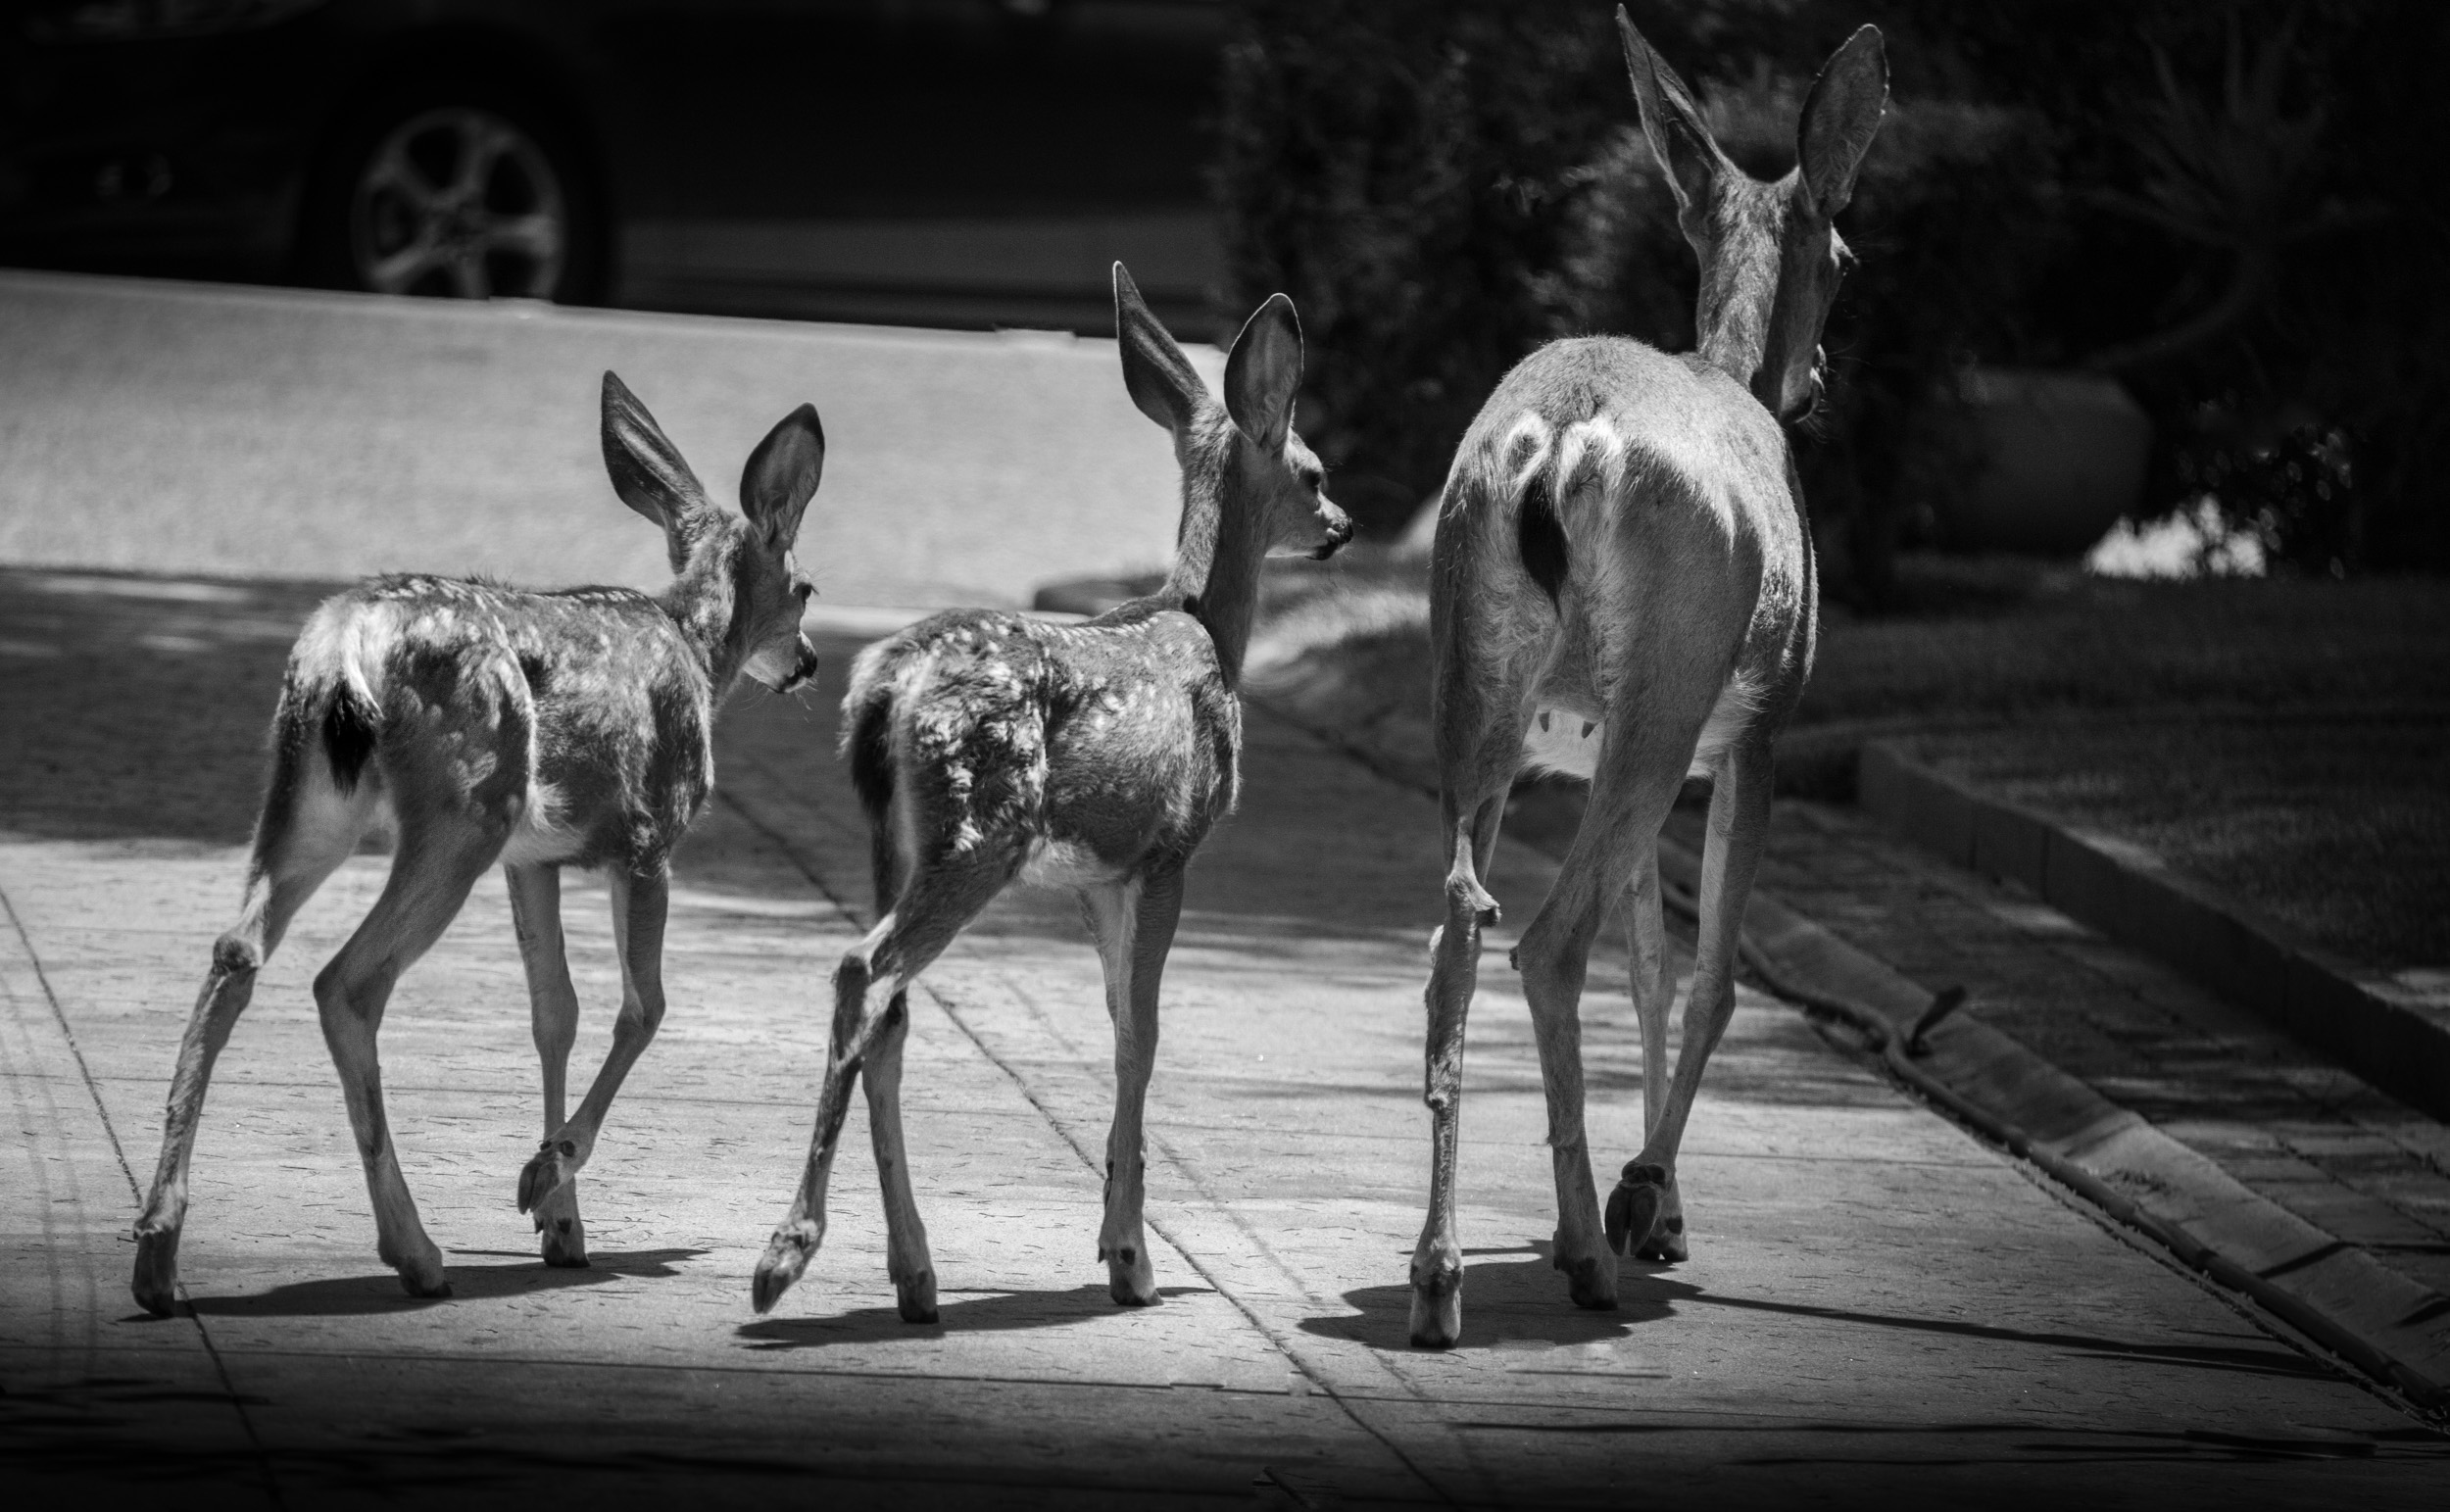 Dear and Fawns, In Driveway, Monrovia, California  © Robert Welkie 2019